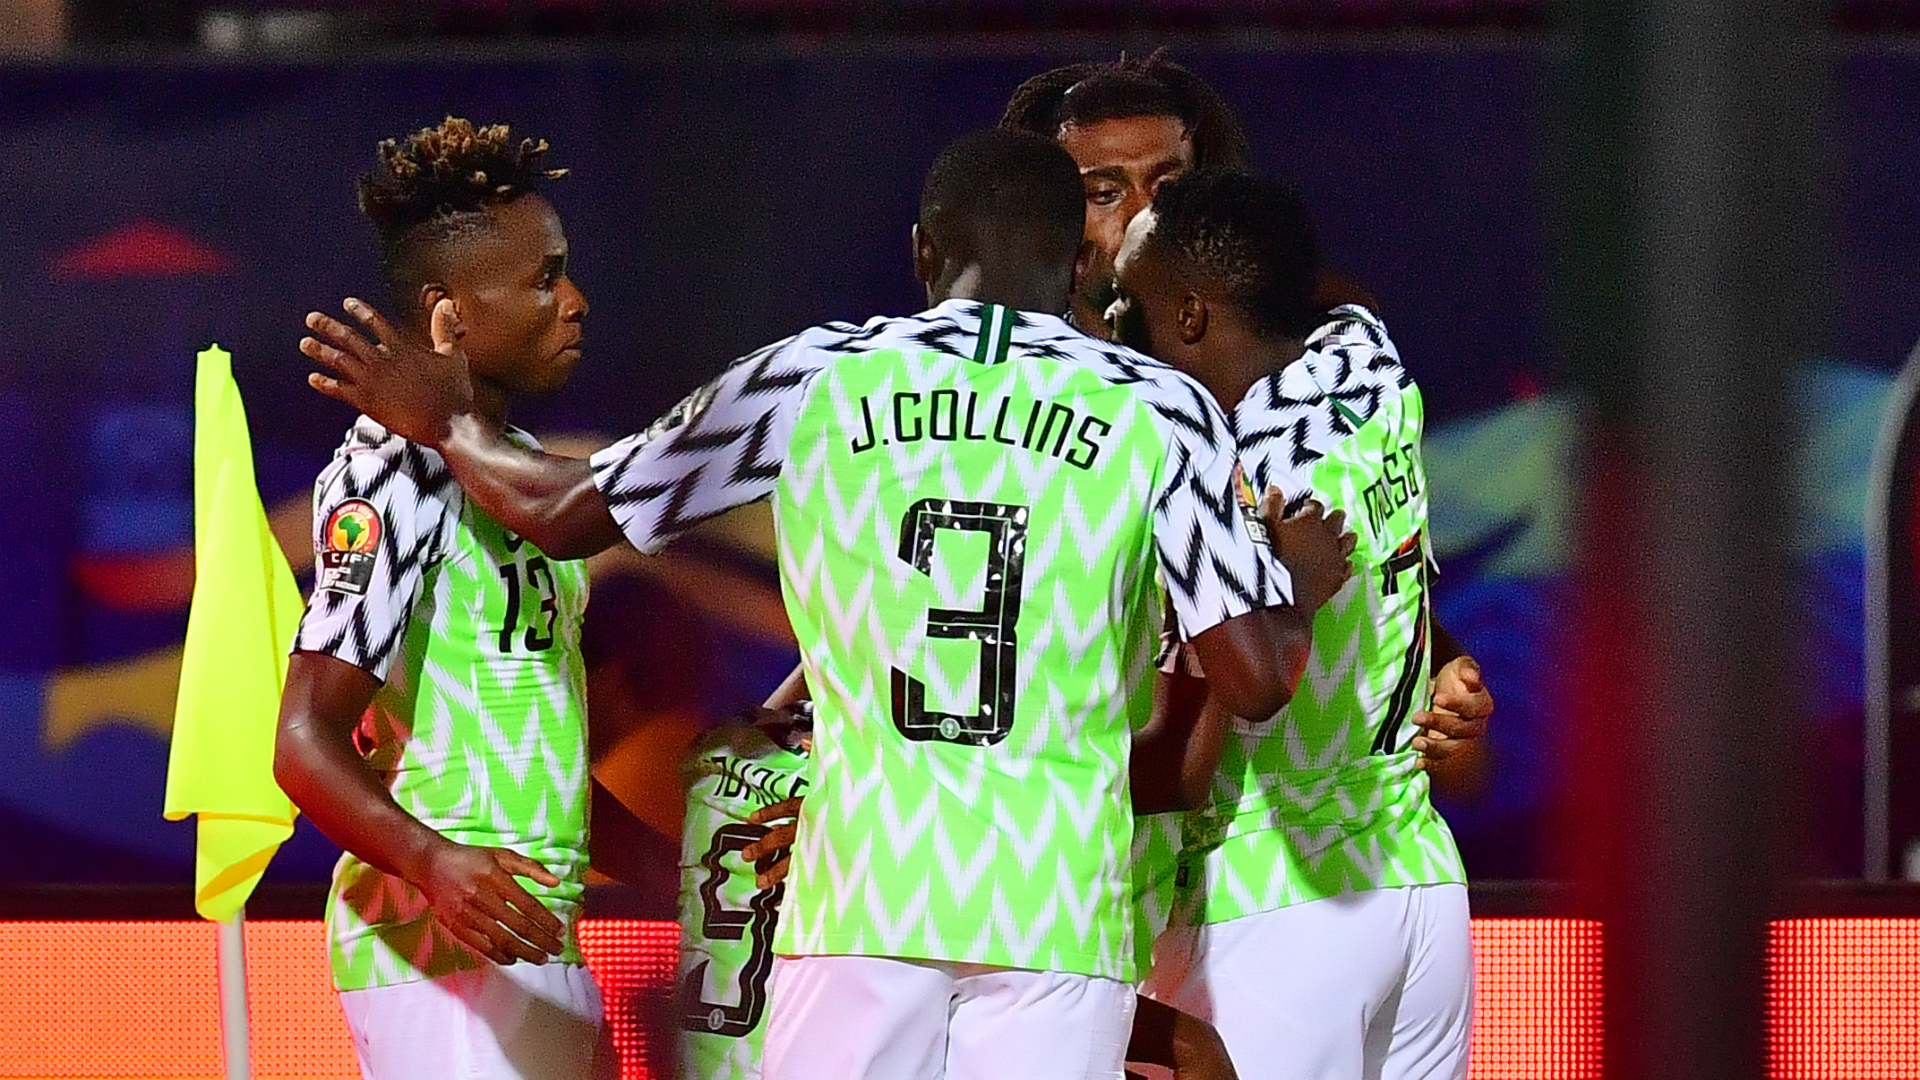 Afcon 2019: Tunisia v Nigeria Player Ratings - Super Eagles struggle for bronze medal